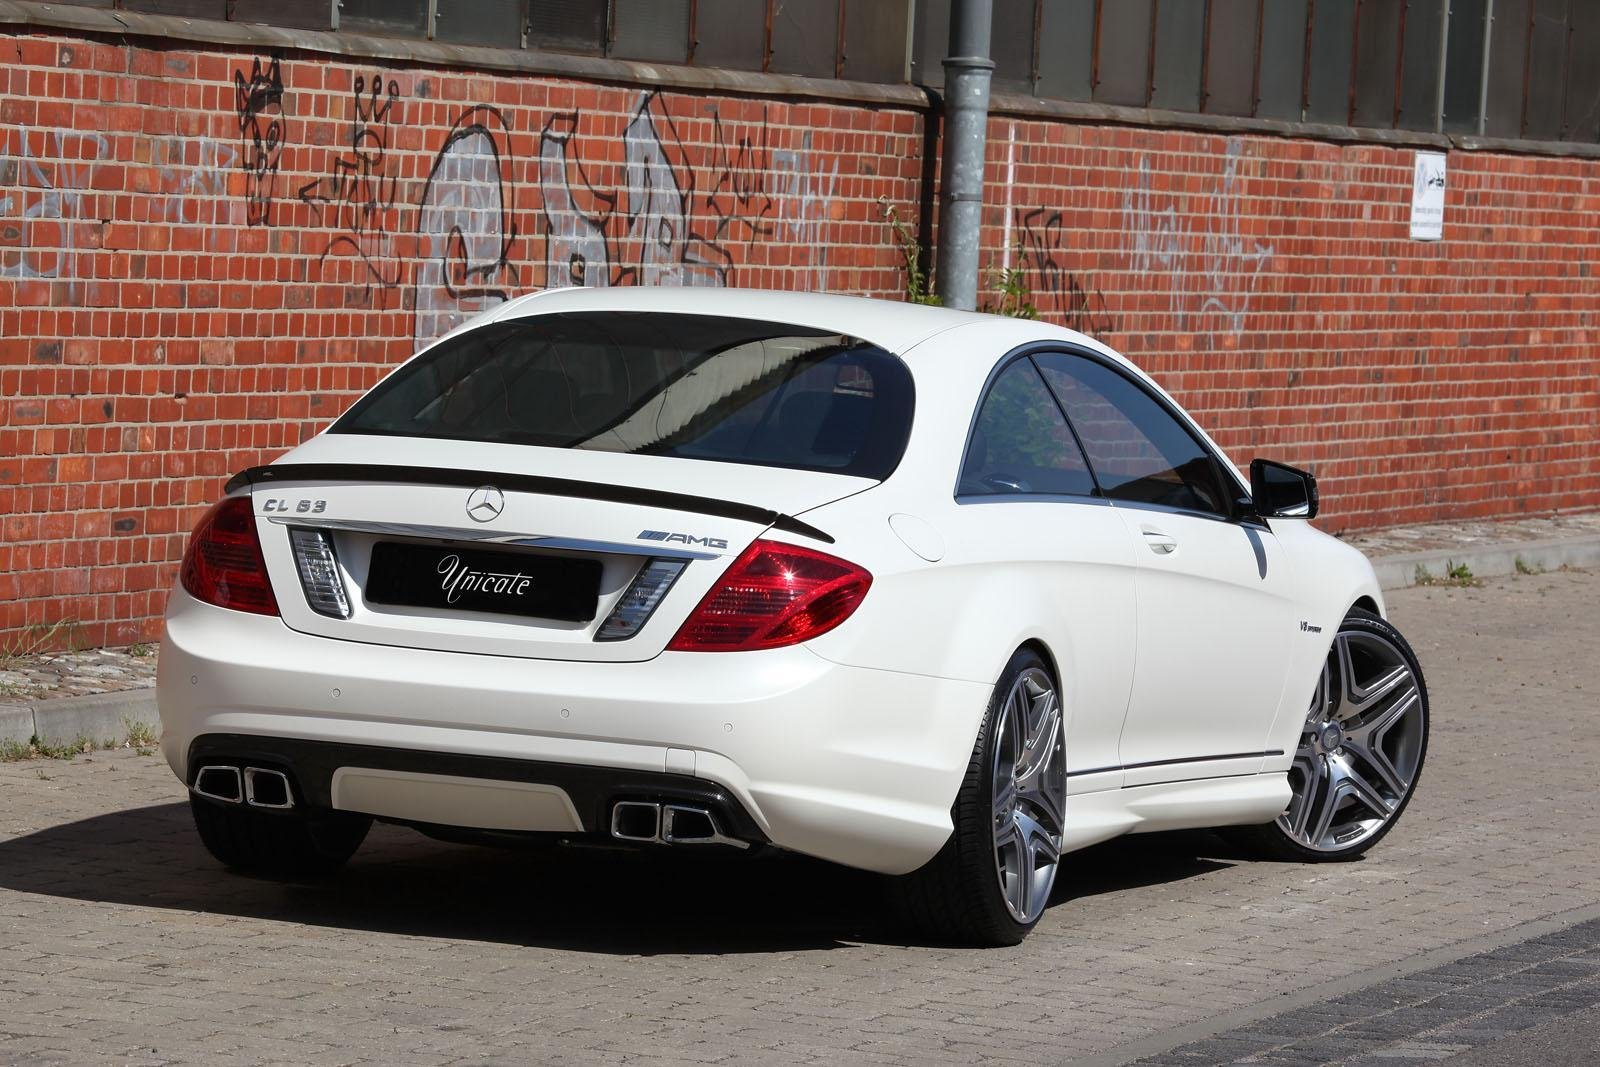 2013 mercedes cl63 amg by unicate germany picture 485179 car review top speed. Black Bedroom Furniture Sets. Home Design Ideas